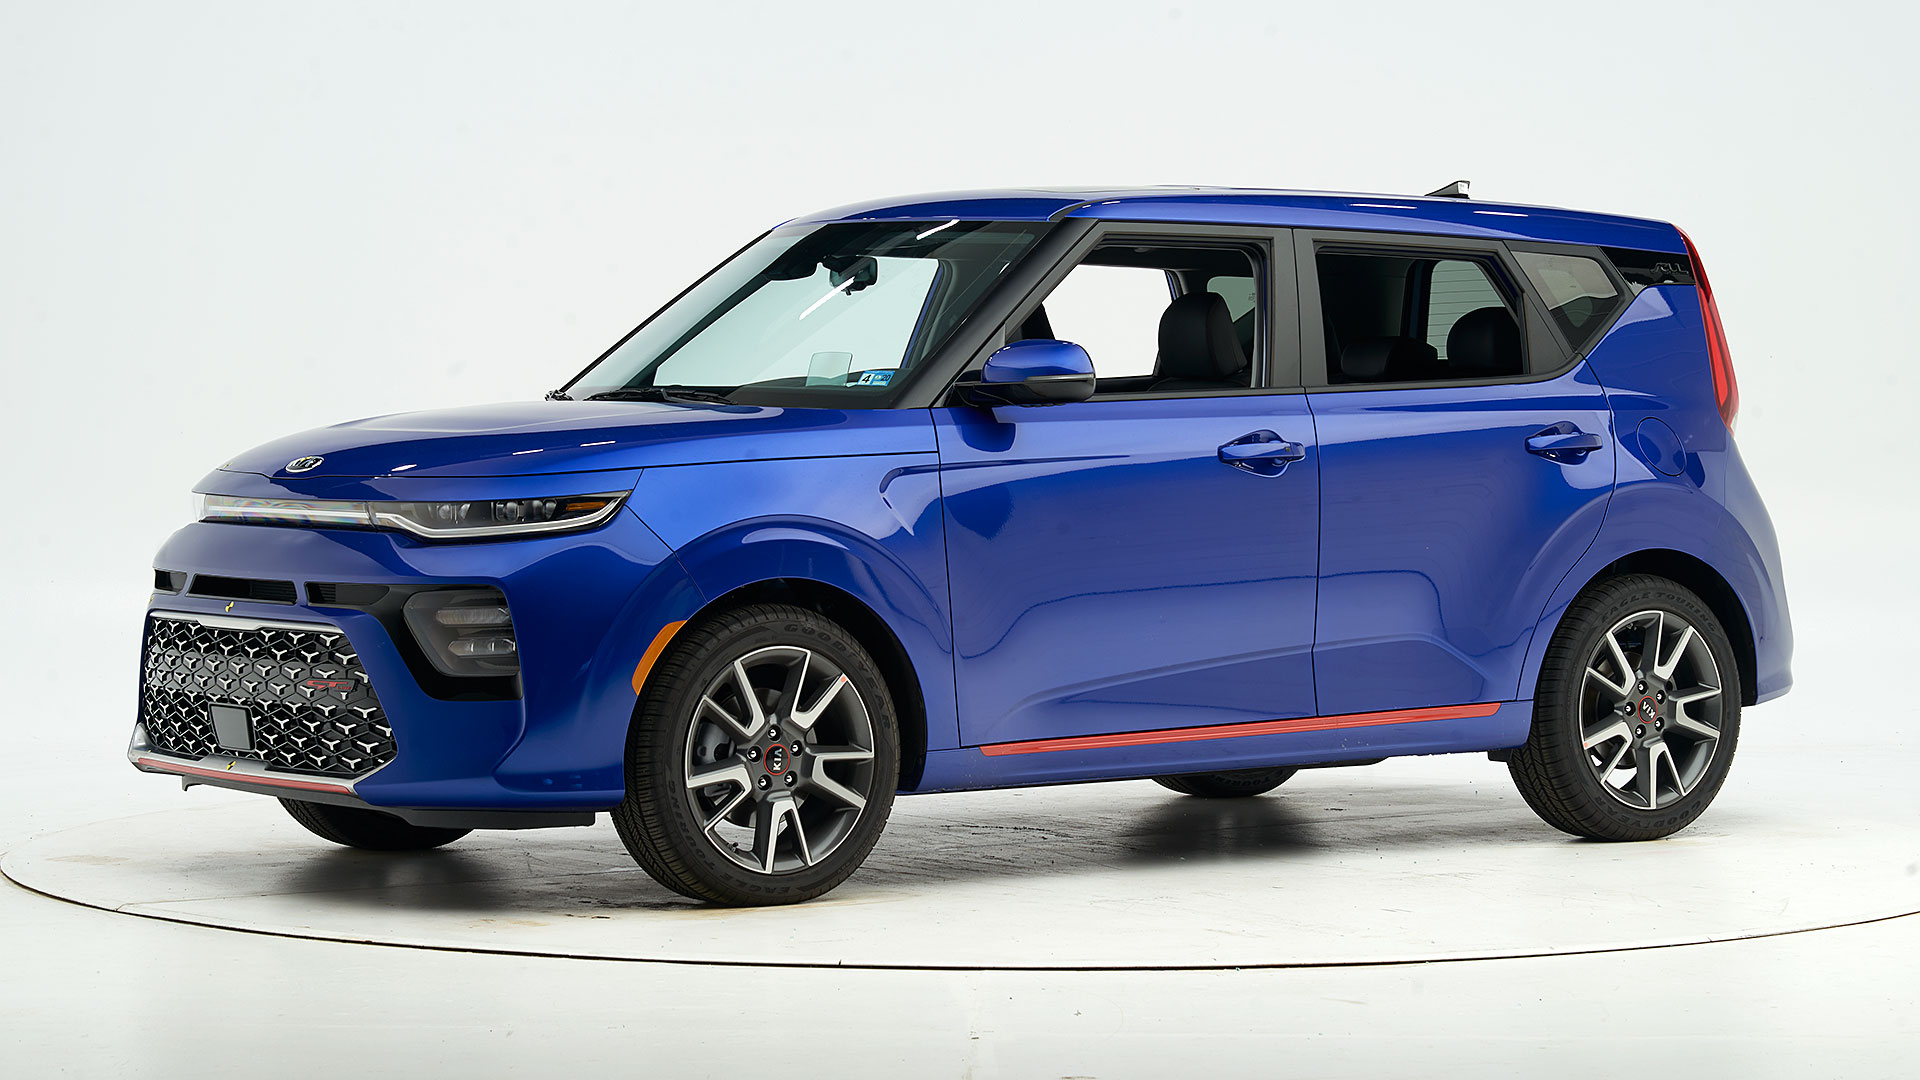 2020 Kia Soul 4-door wagon